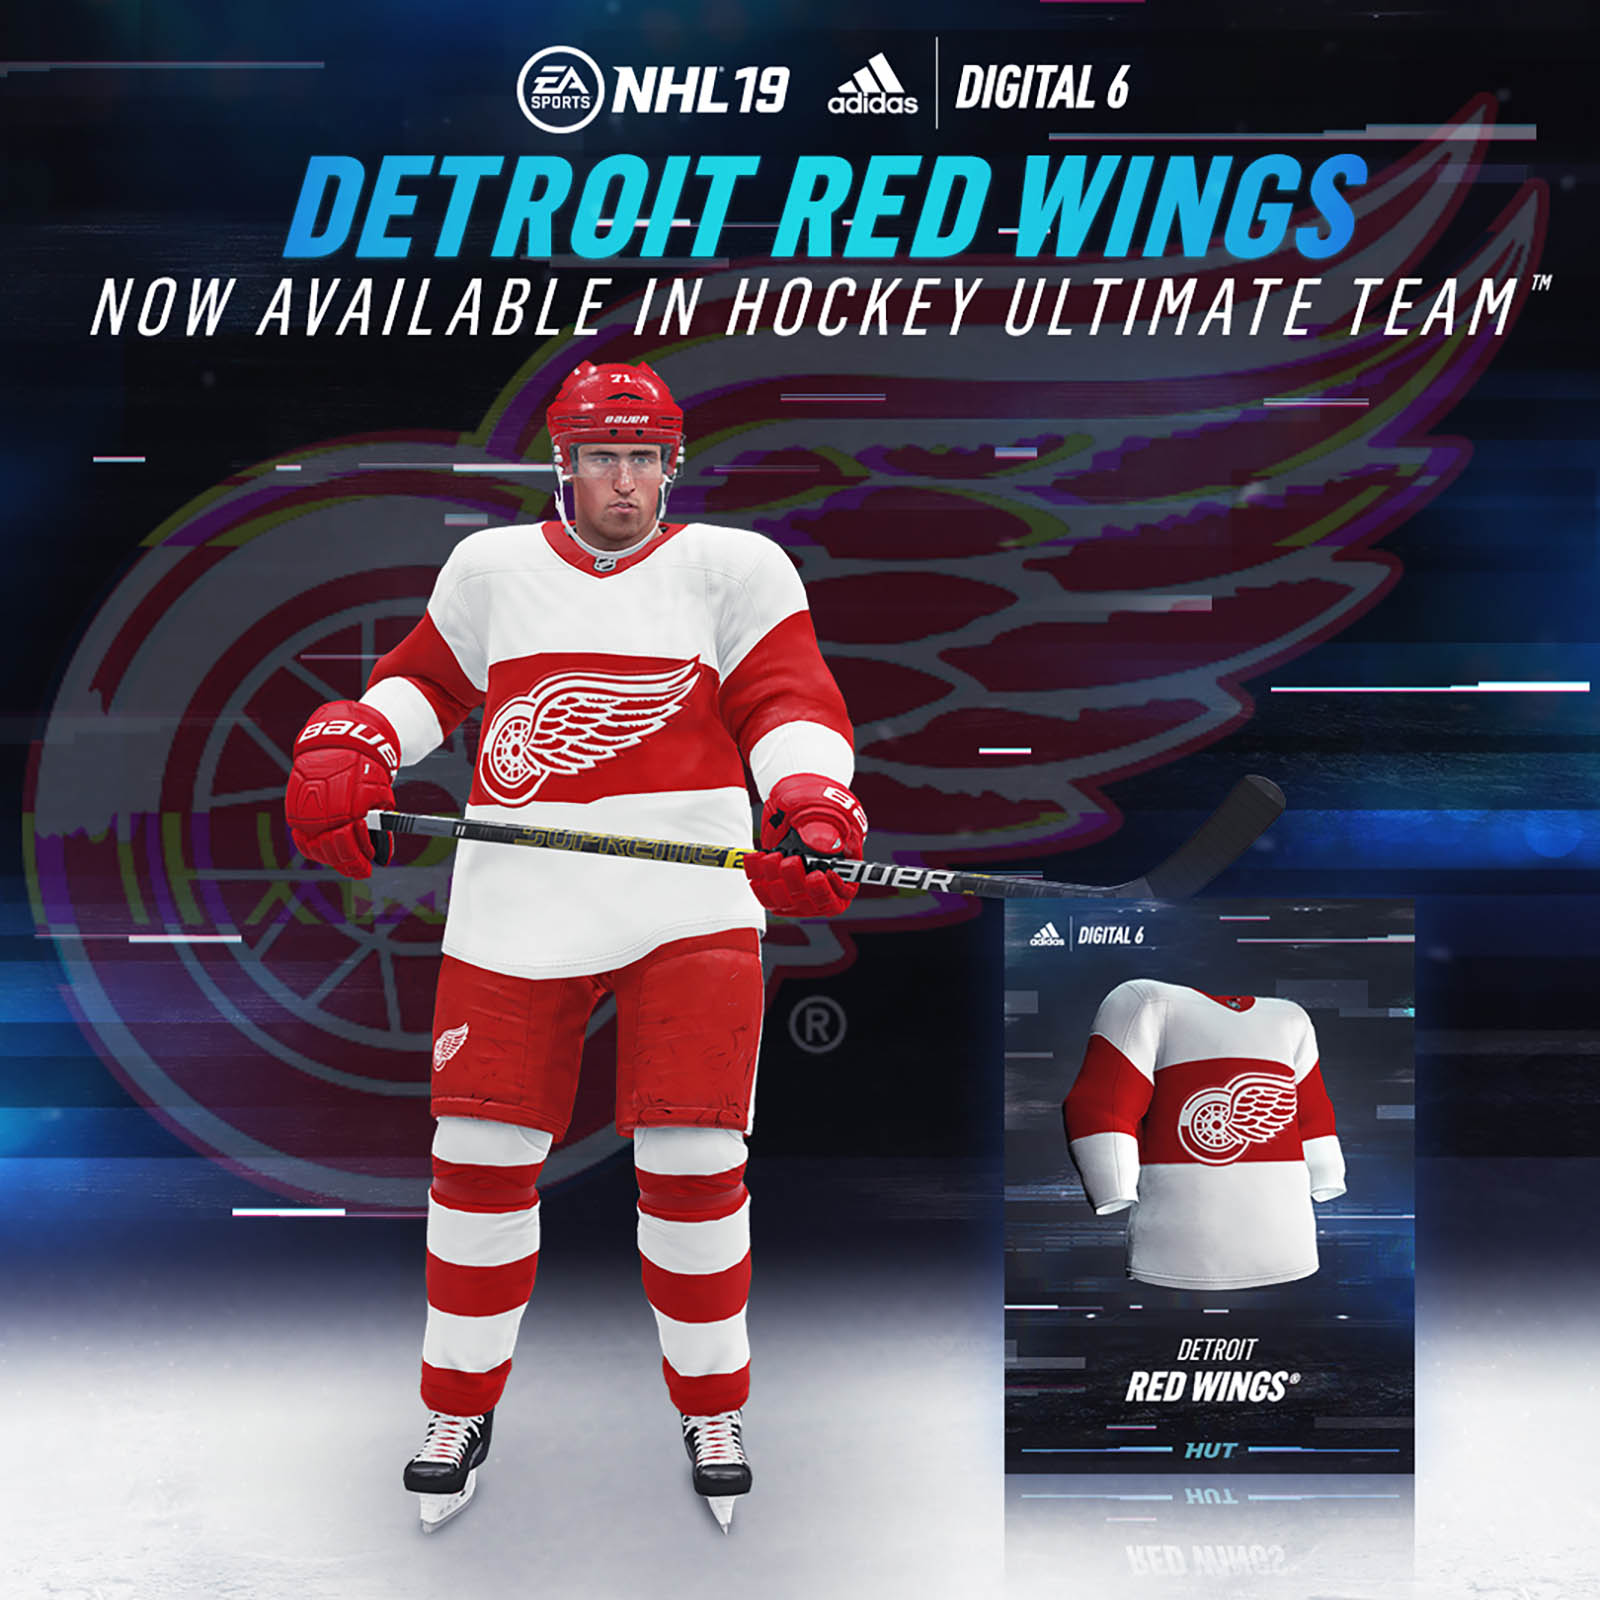 de5777633f2 adidasHockey x EA_Digital6_RedWings_01.jpg